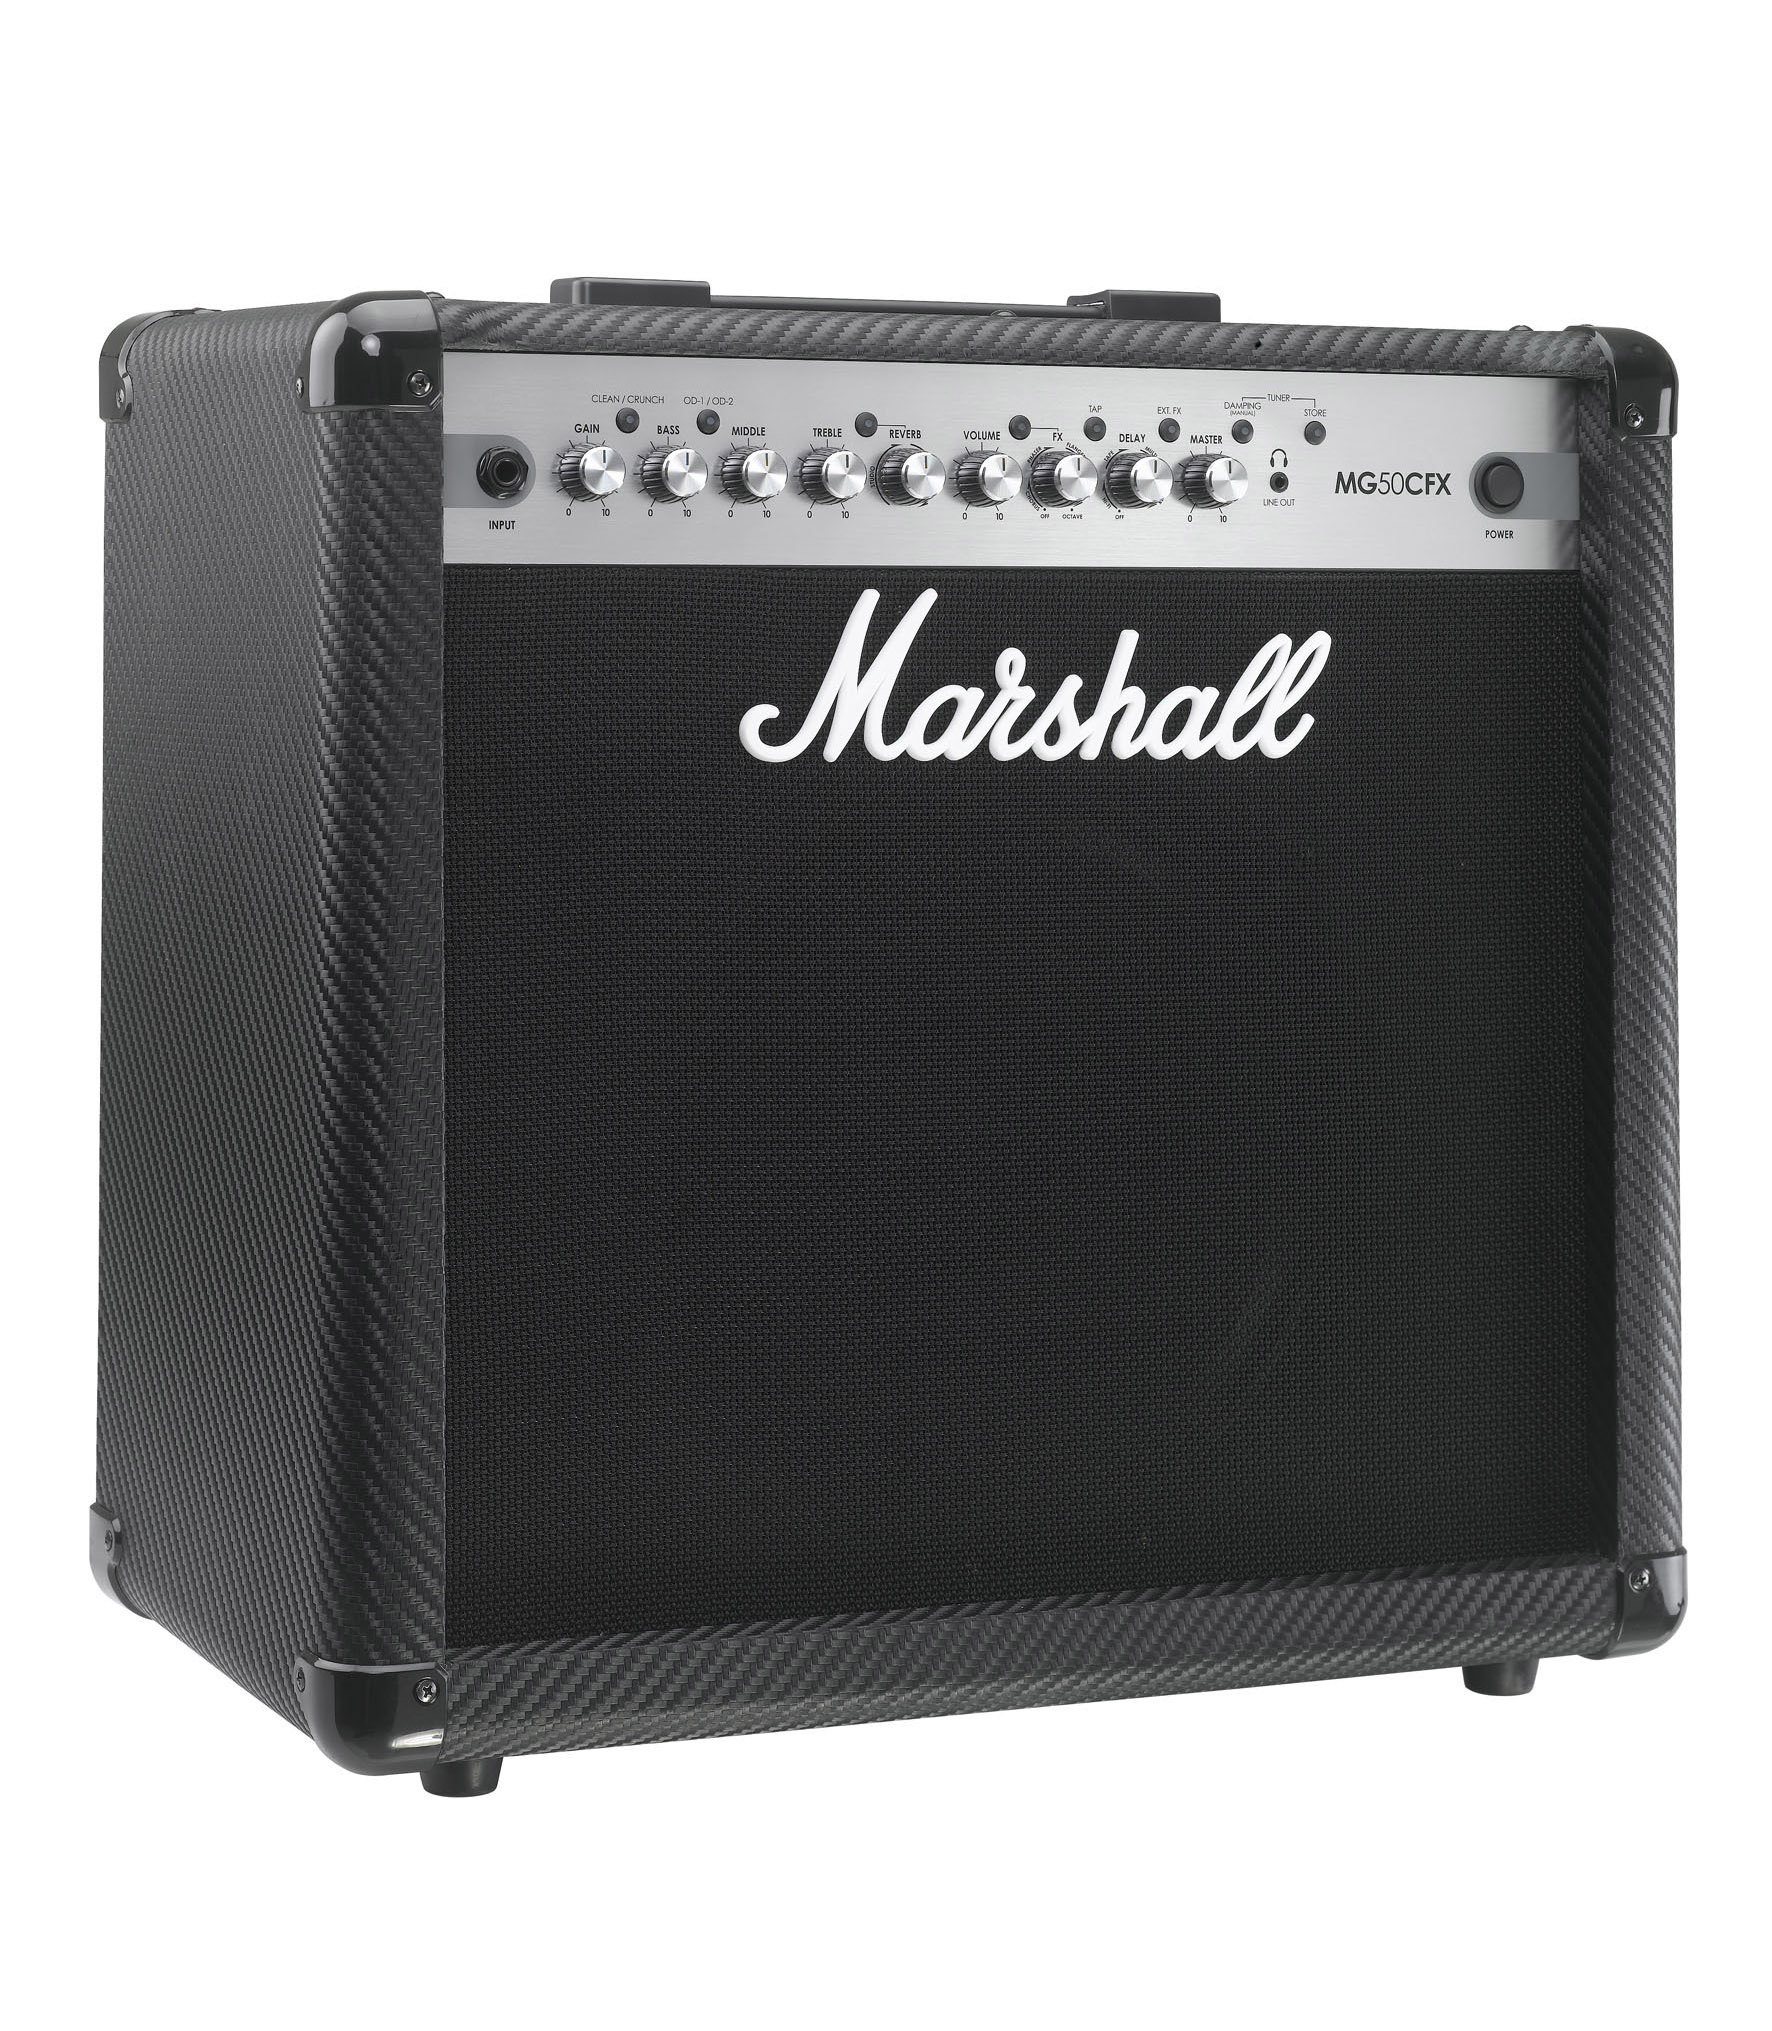 Marshall - MG50CFX - Melody House Musical Instruments